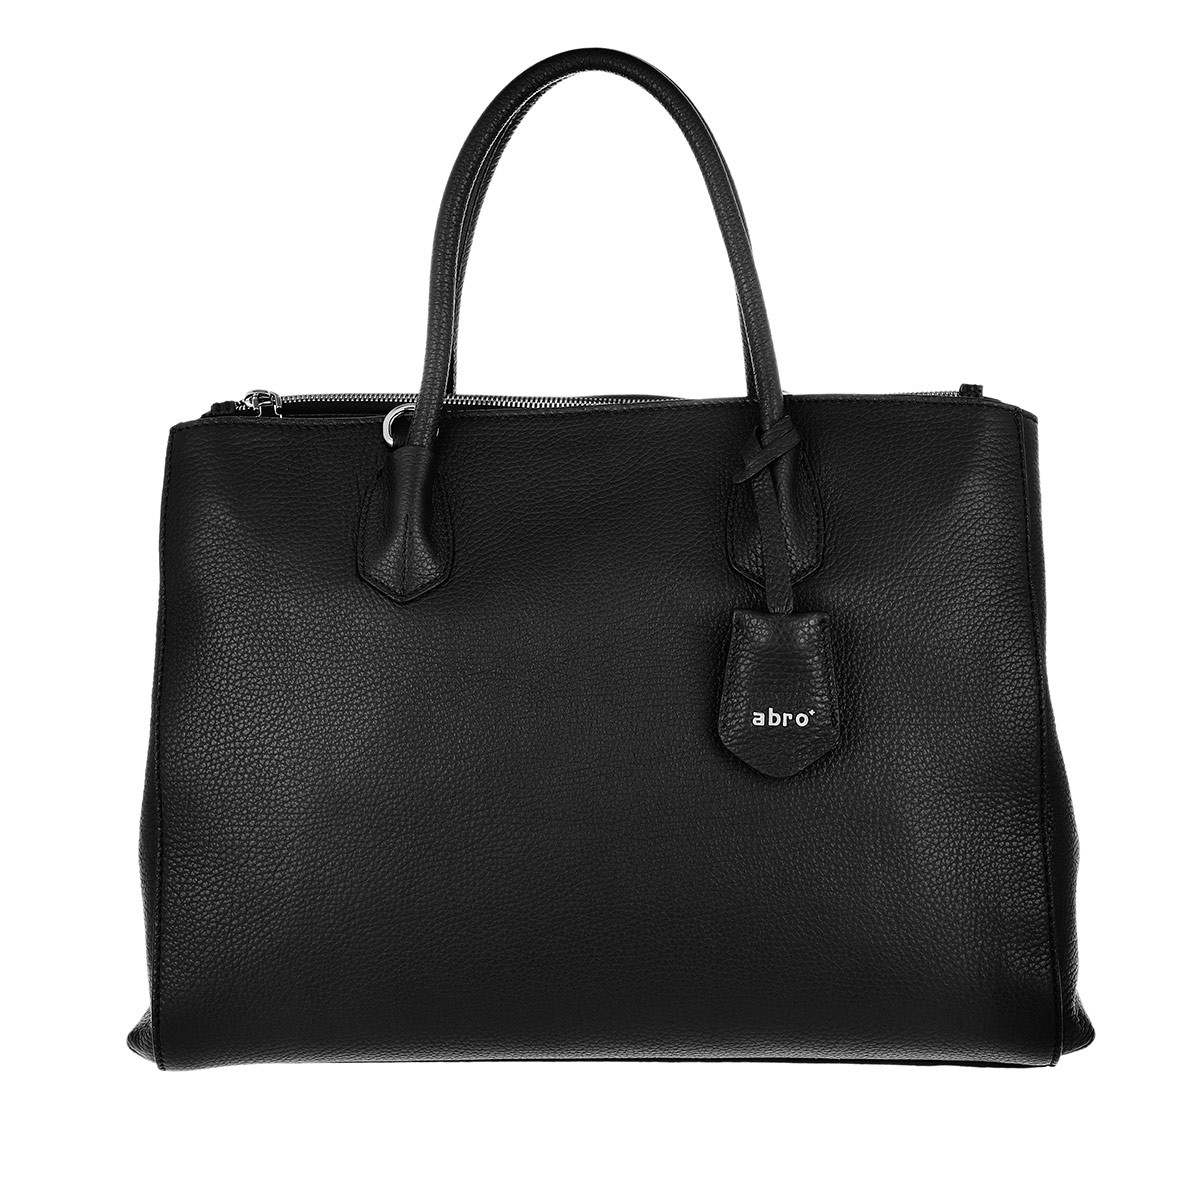 Abro Tote - Business Shopper Busy Large Black Nickel - in schwarz - für Damen